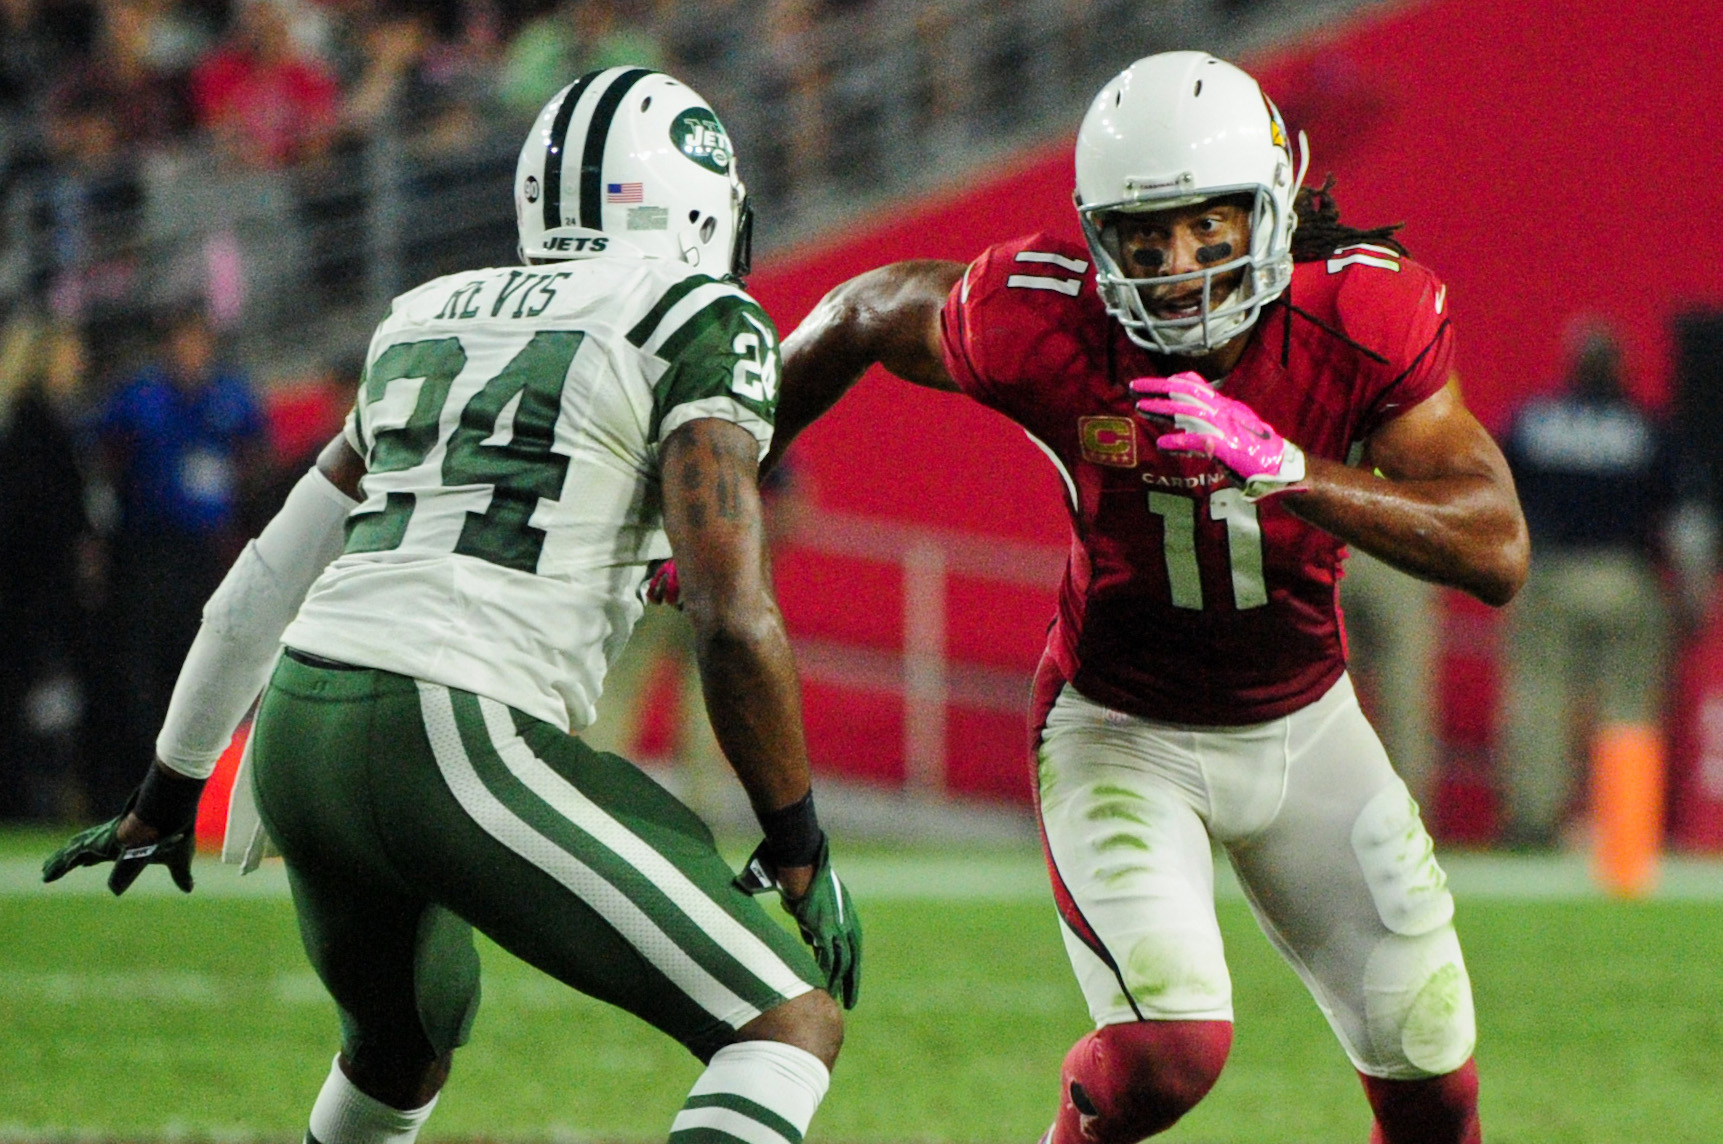 9615938-nfl-new-york-jets-at-arizona-cardinals